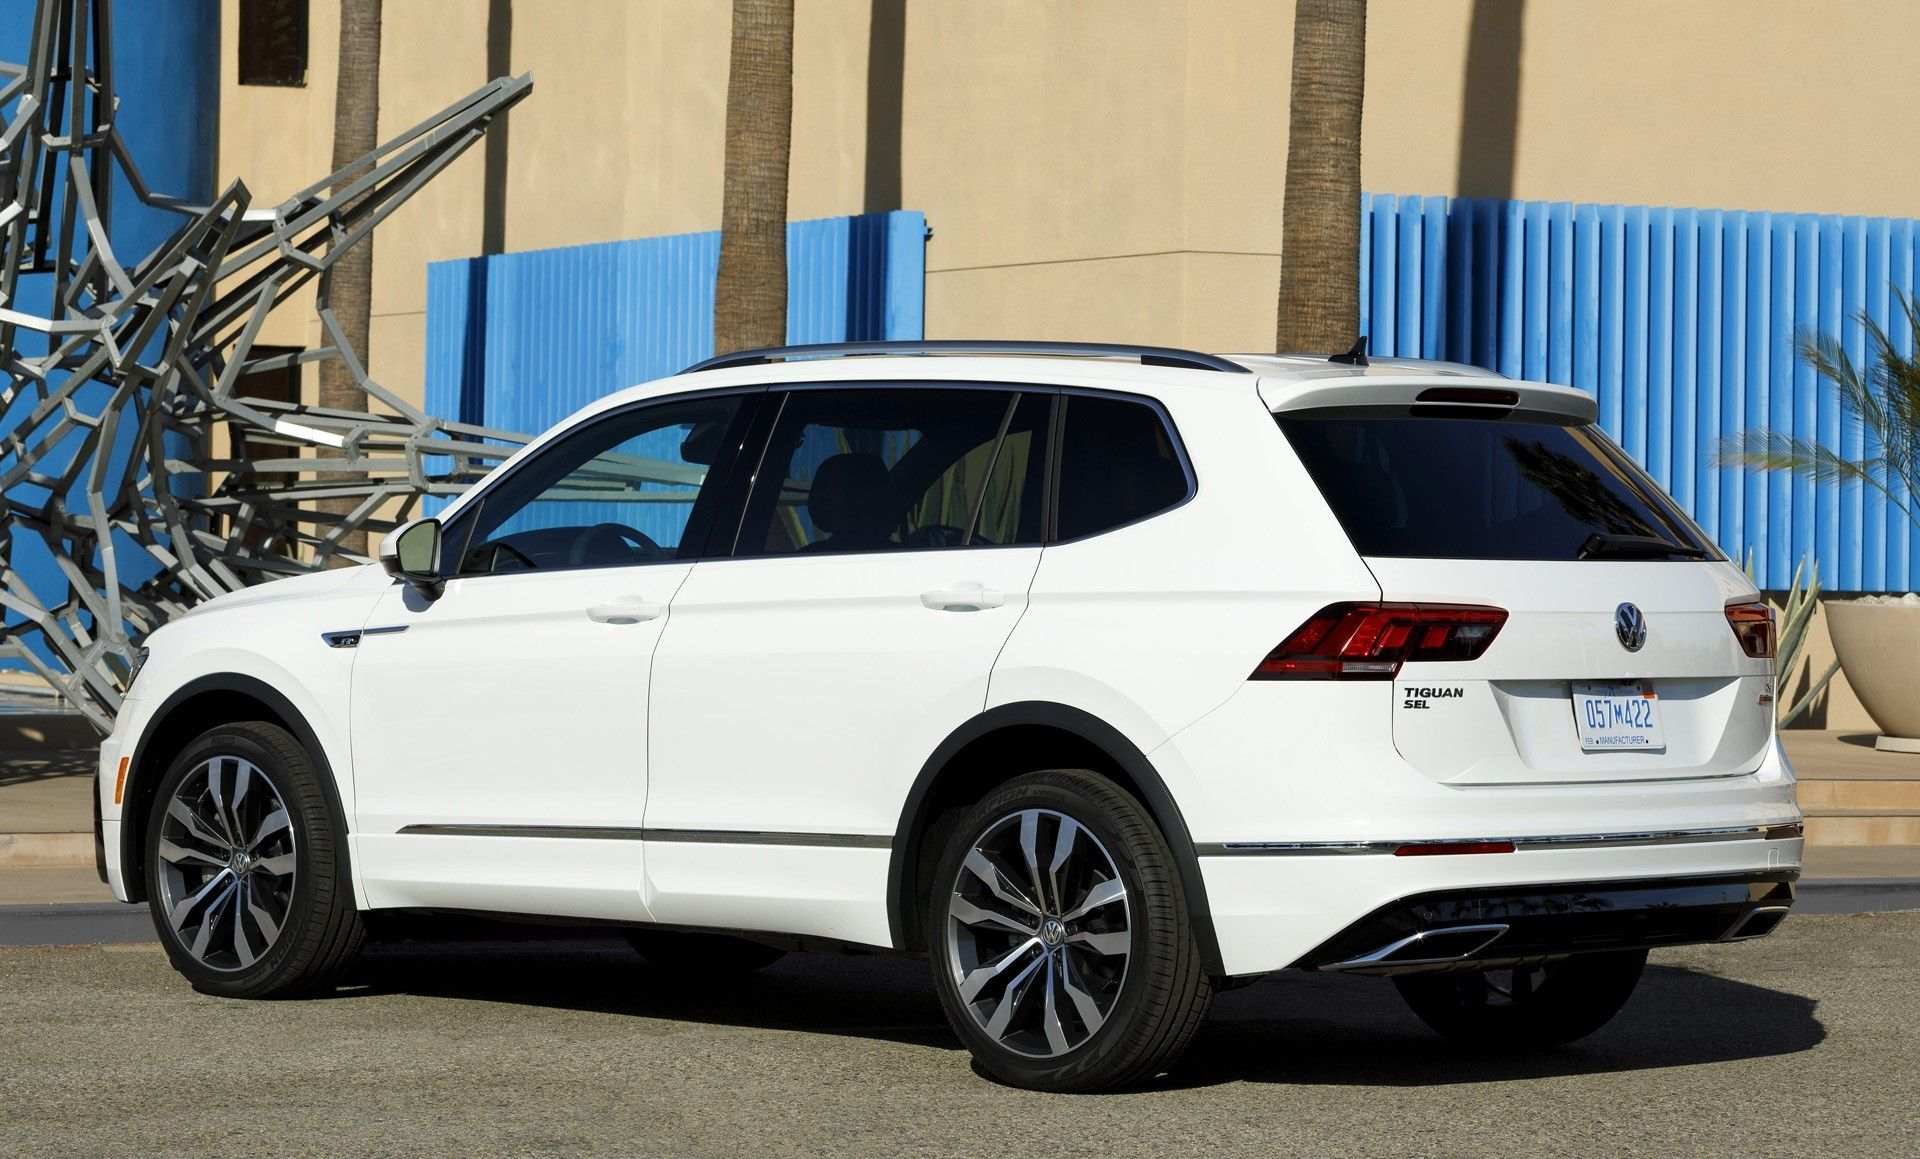 2019 Vw Tiguan R Line More Powerful With New Engine Options Tiguan R Volkswagen Tiguan R Line